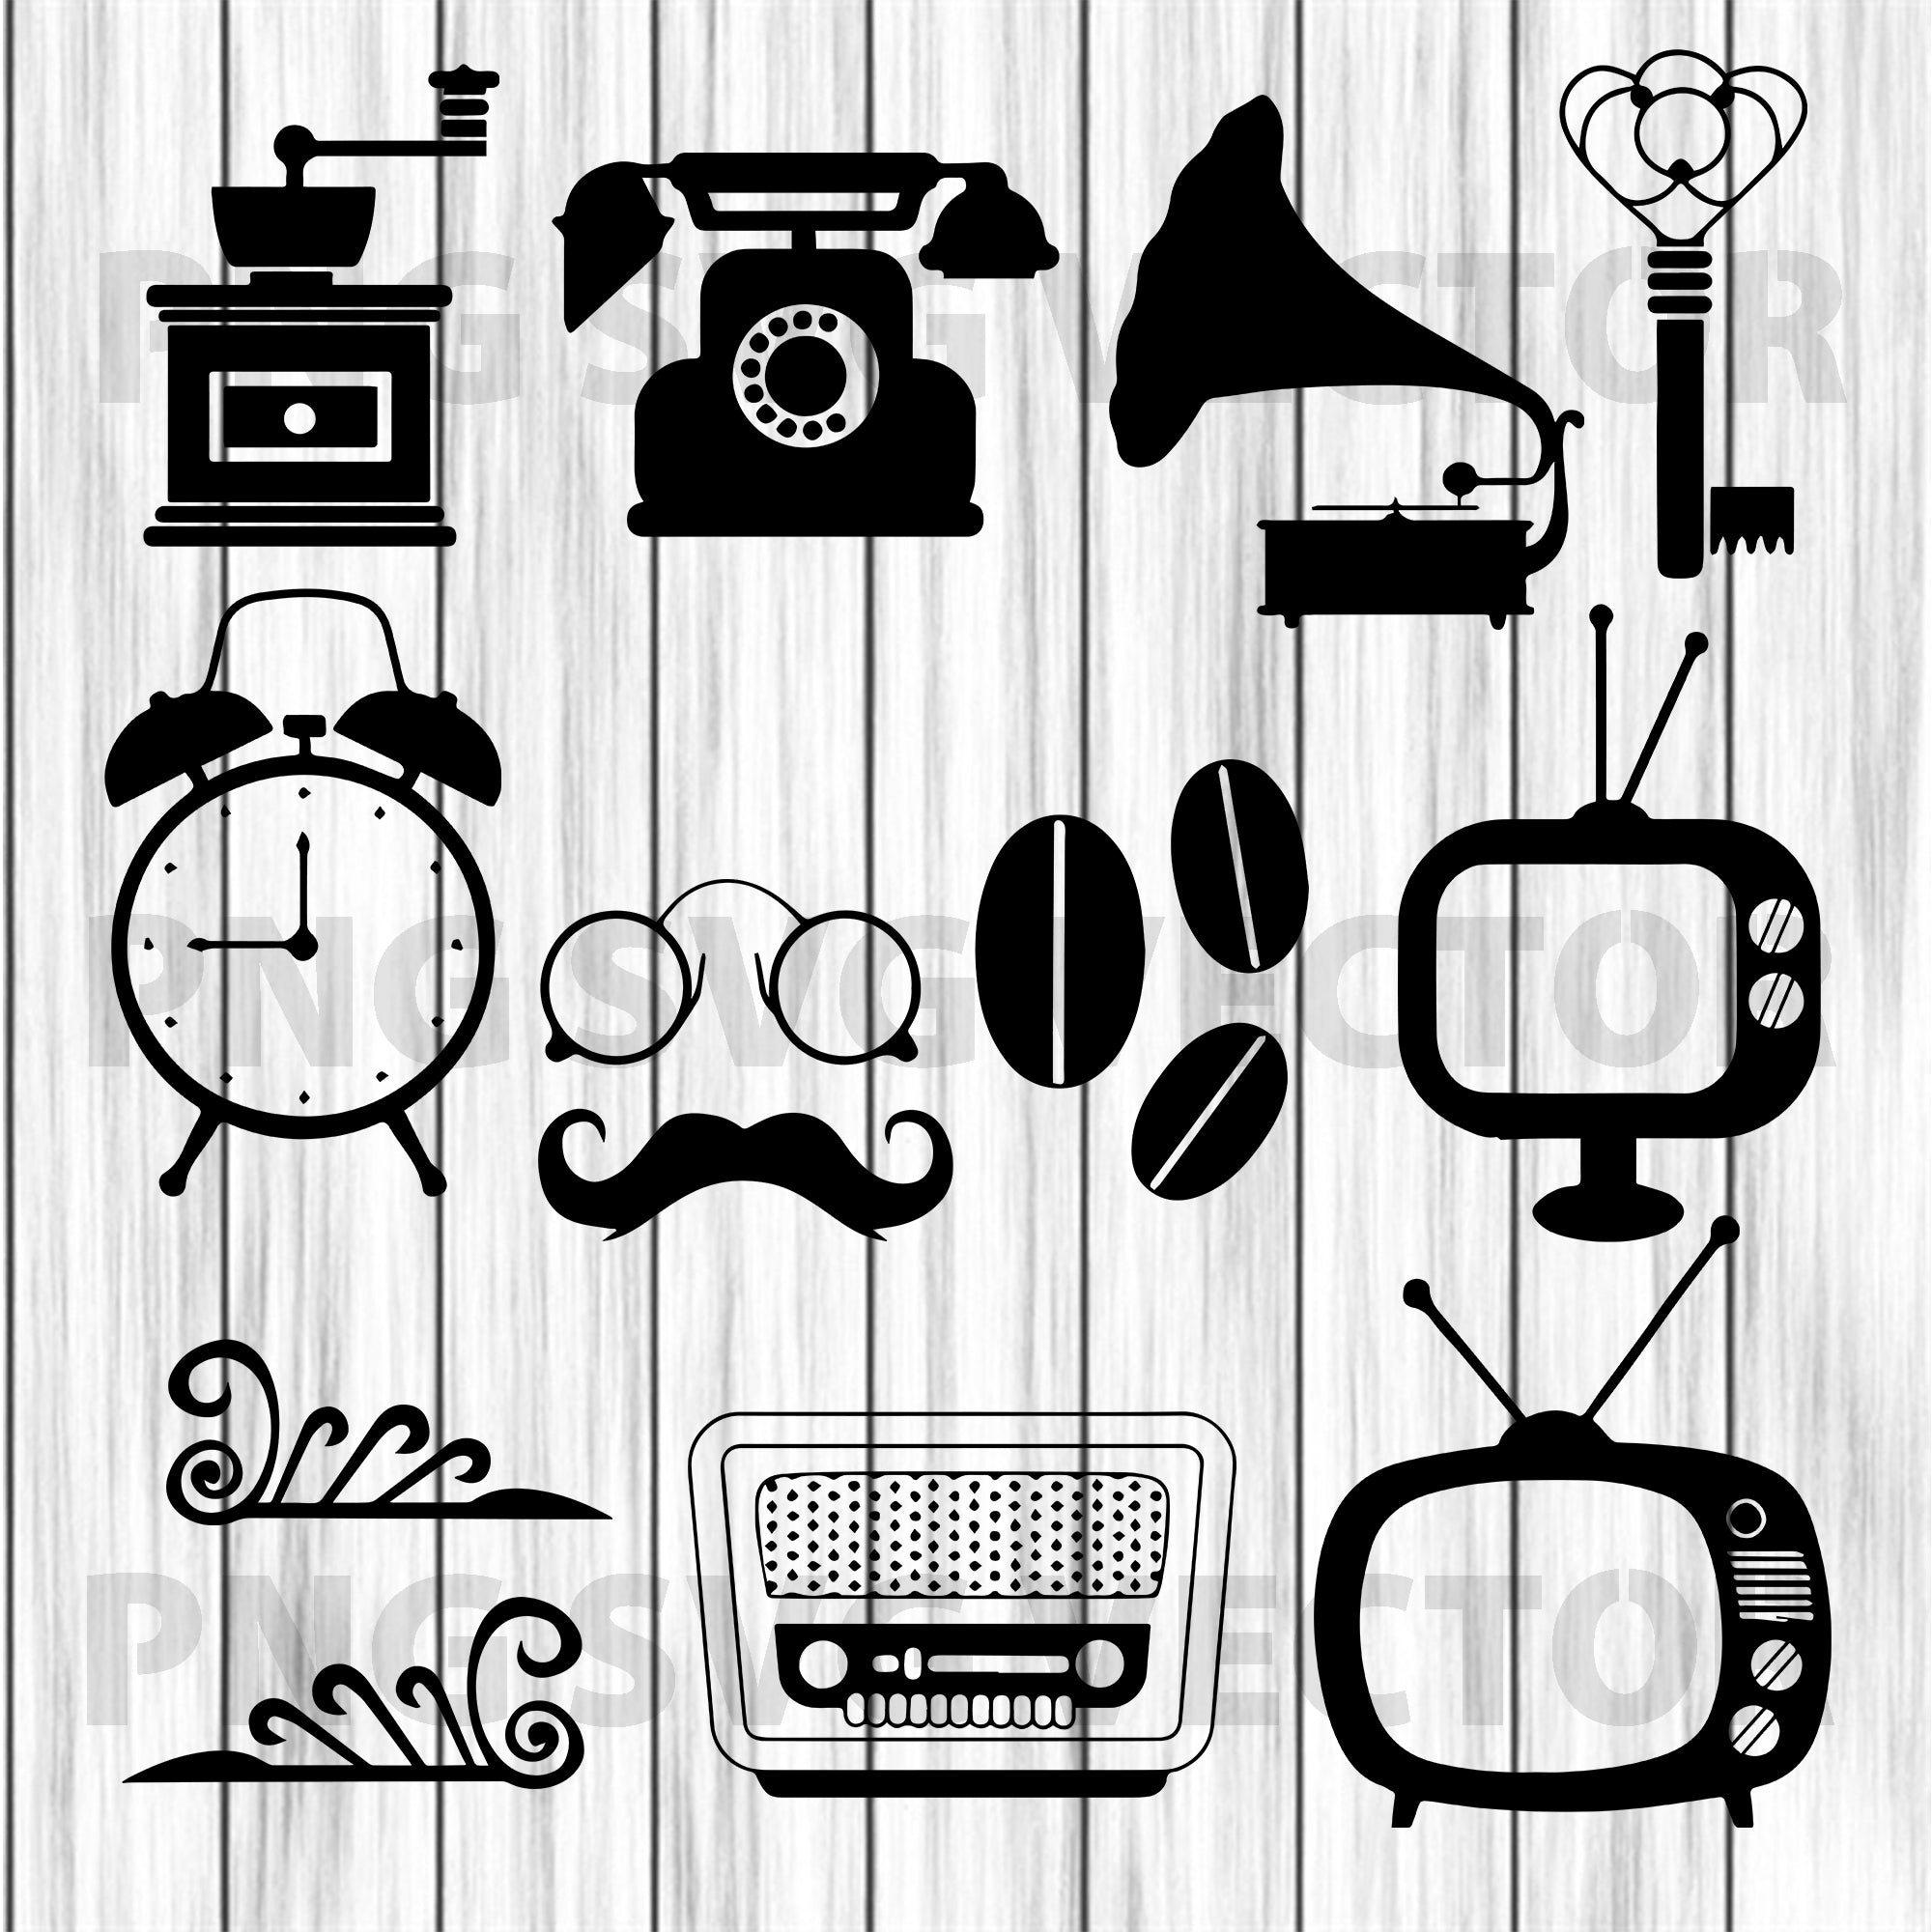 Vintage TV Set Svg, Television Set Svg, Vintage Svg Files, Vintage TV Cutting Files For Cricut, SVG, DXF, EPS, PNG Instant Download